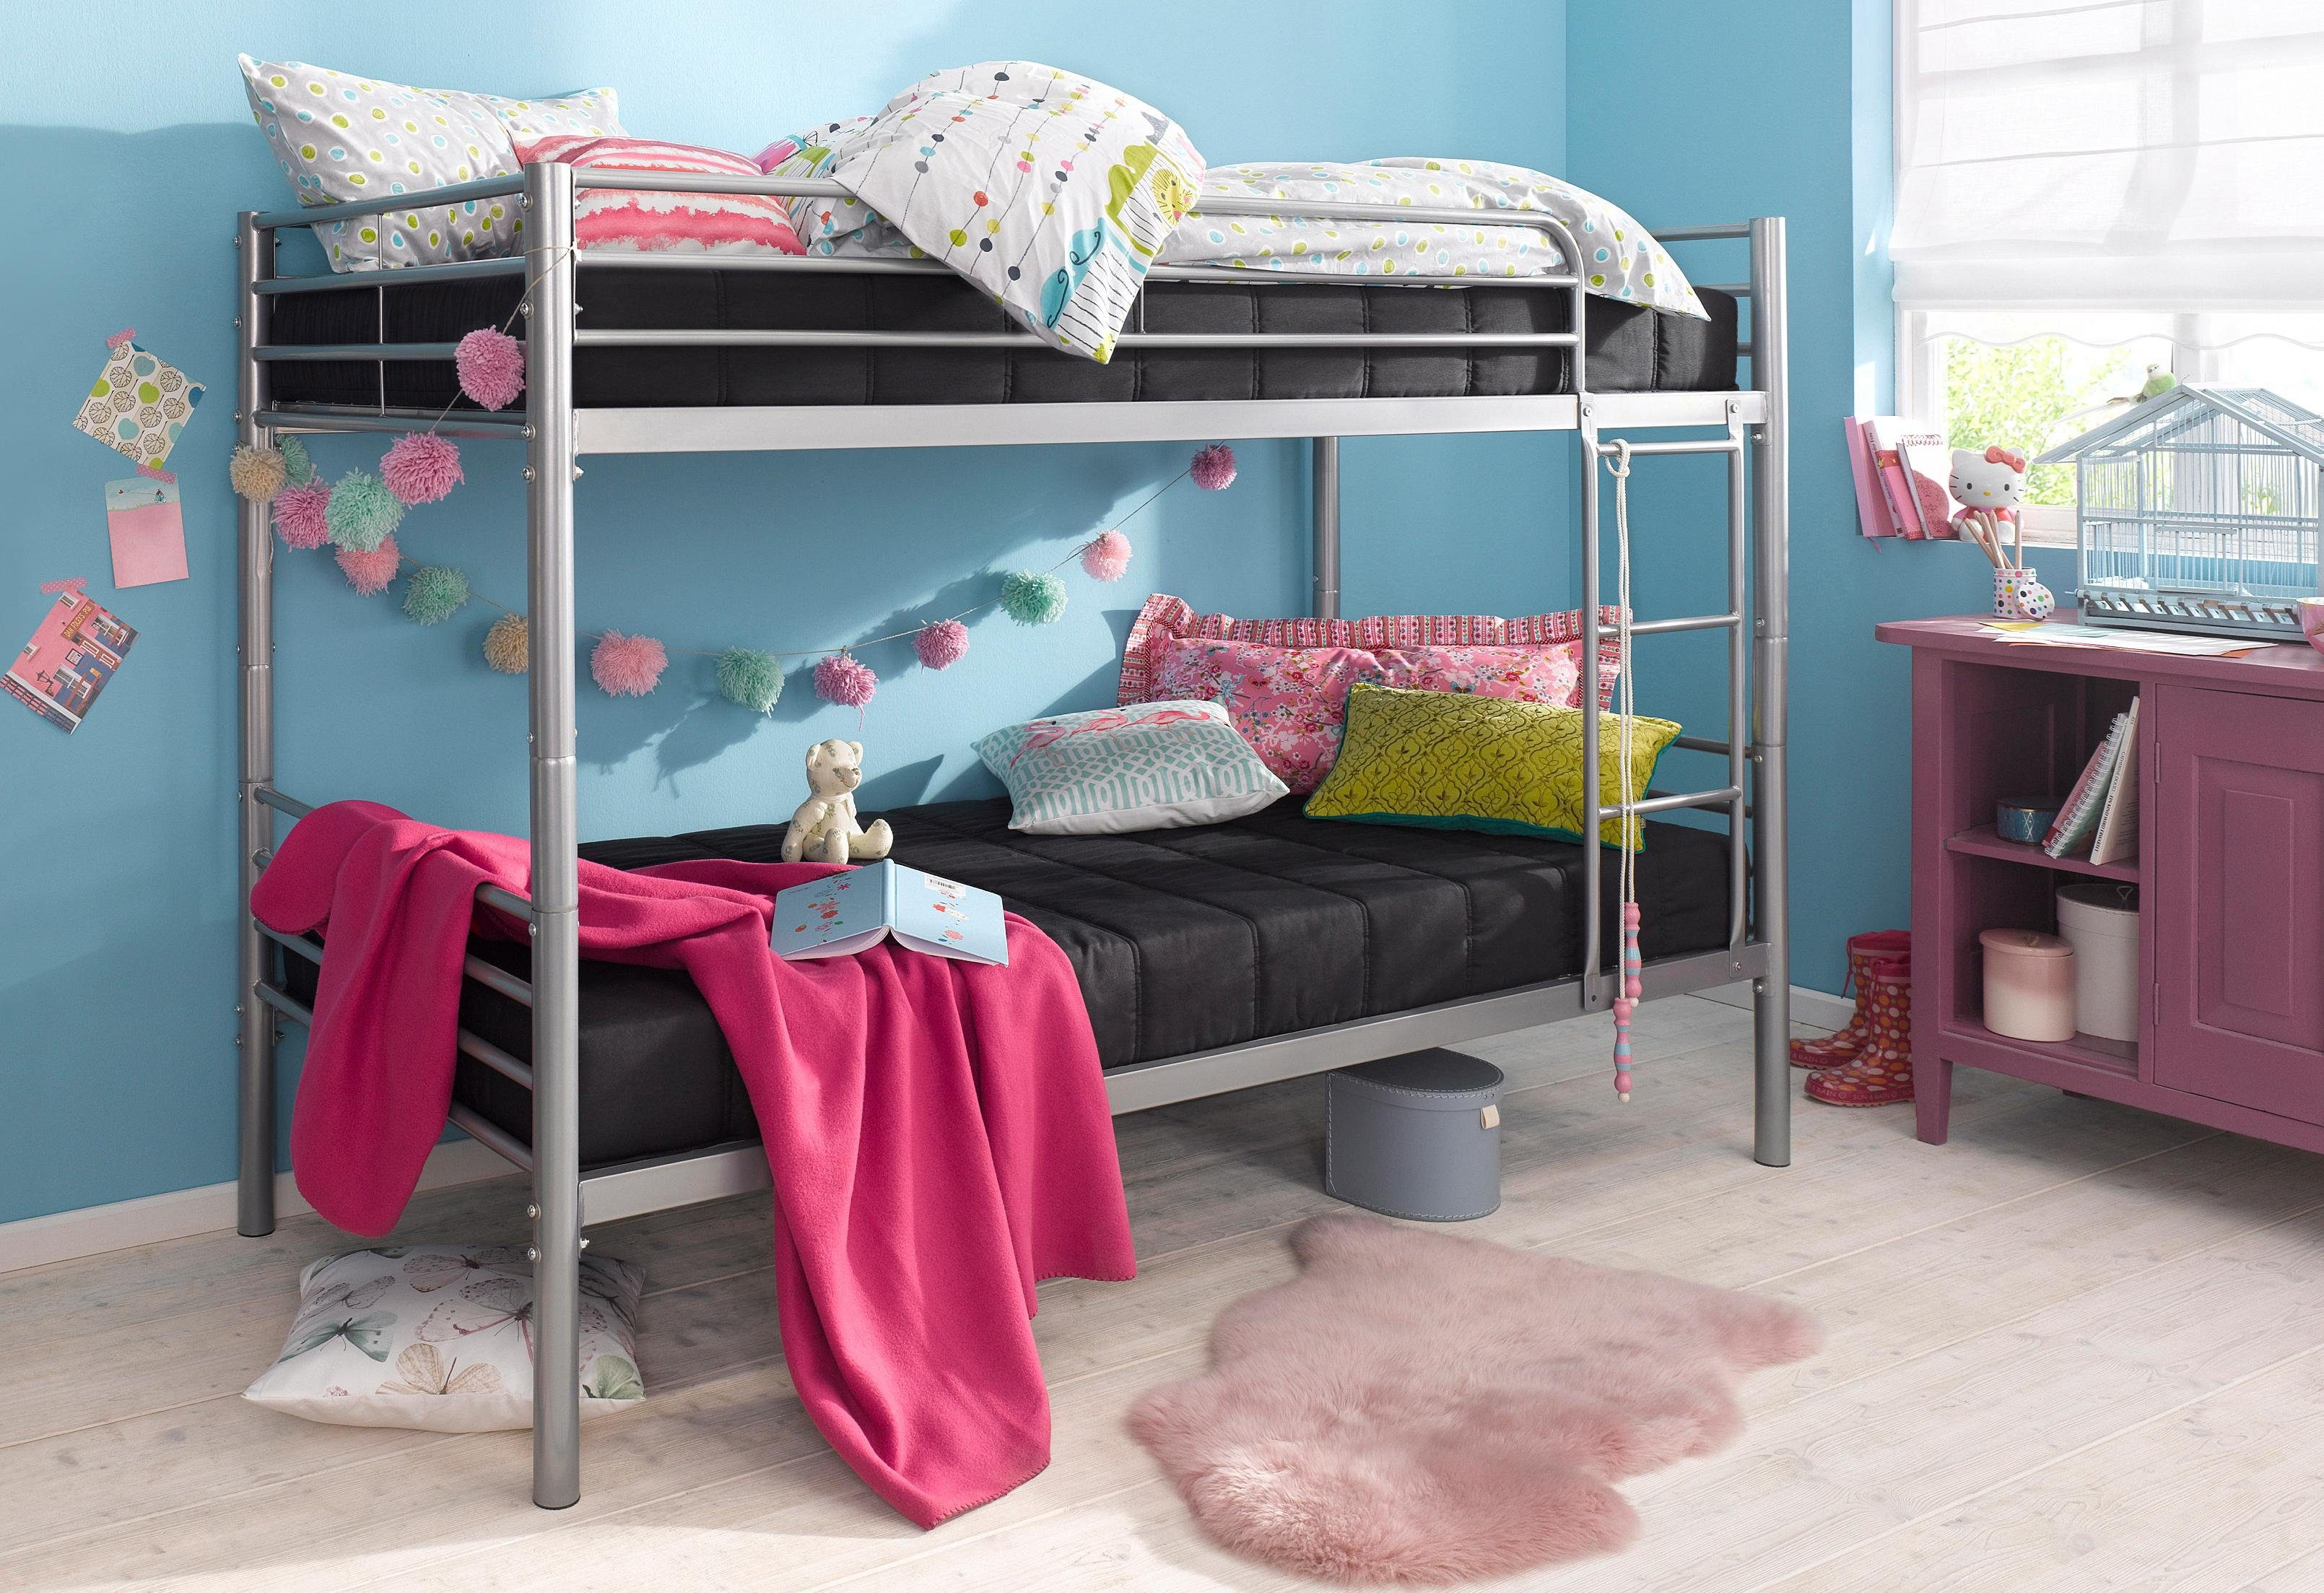 Etagenbett Ottos : Atlantic home collection metall einzel etagenbett otto